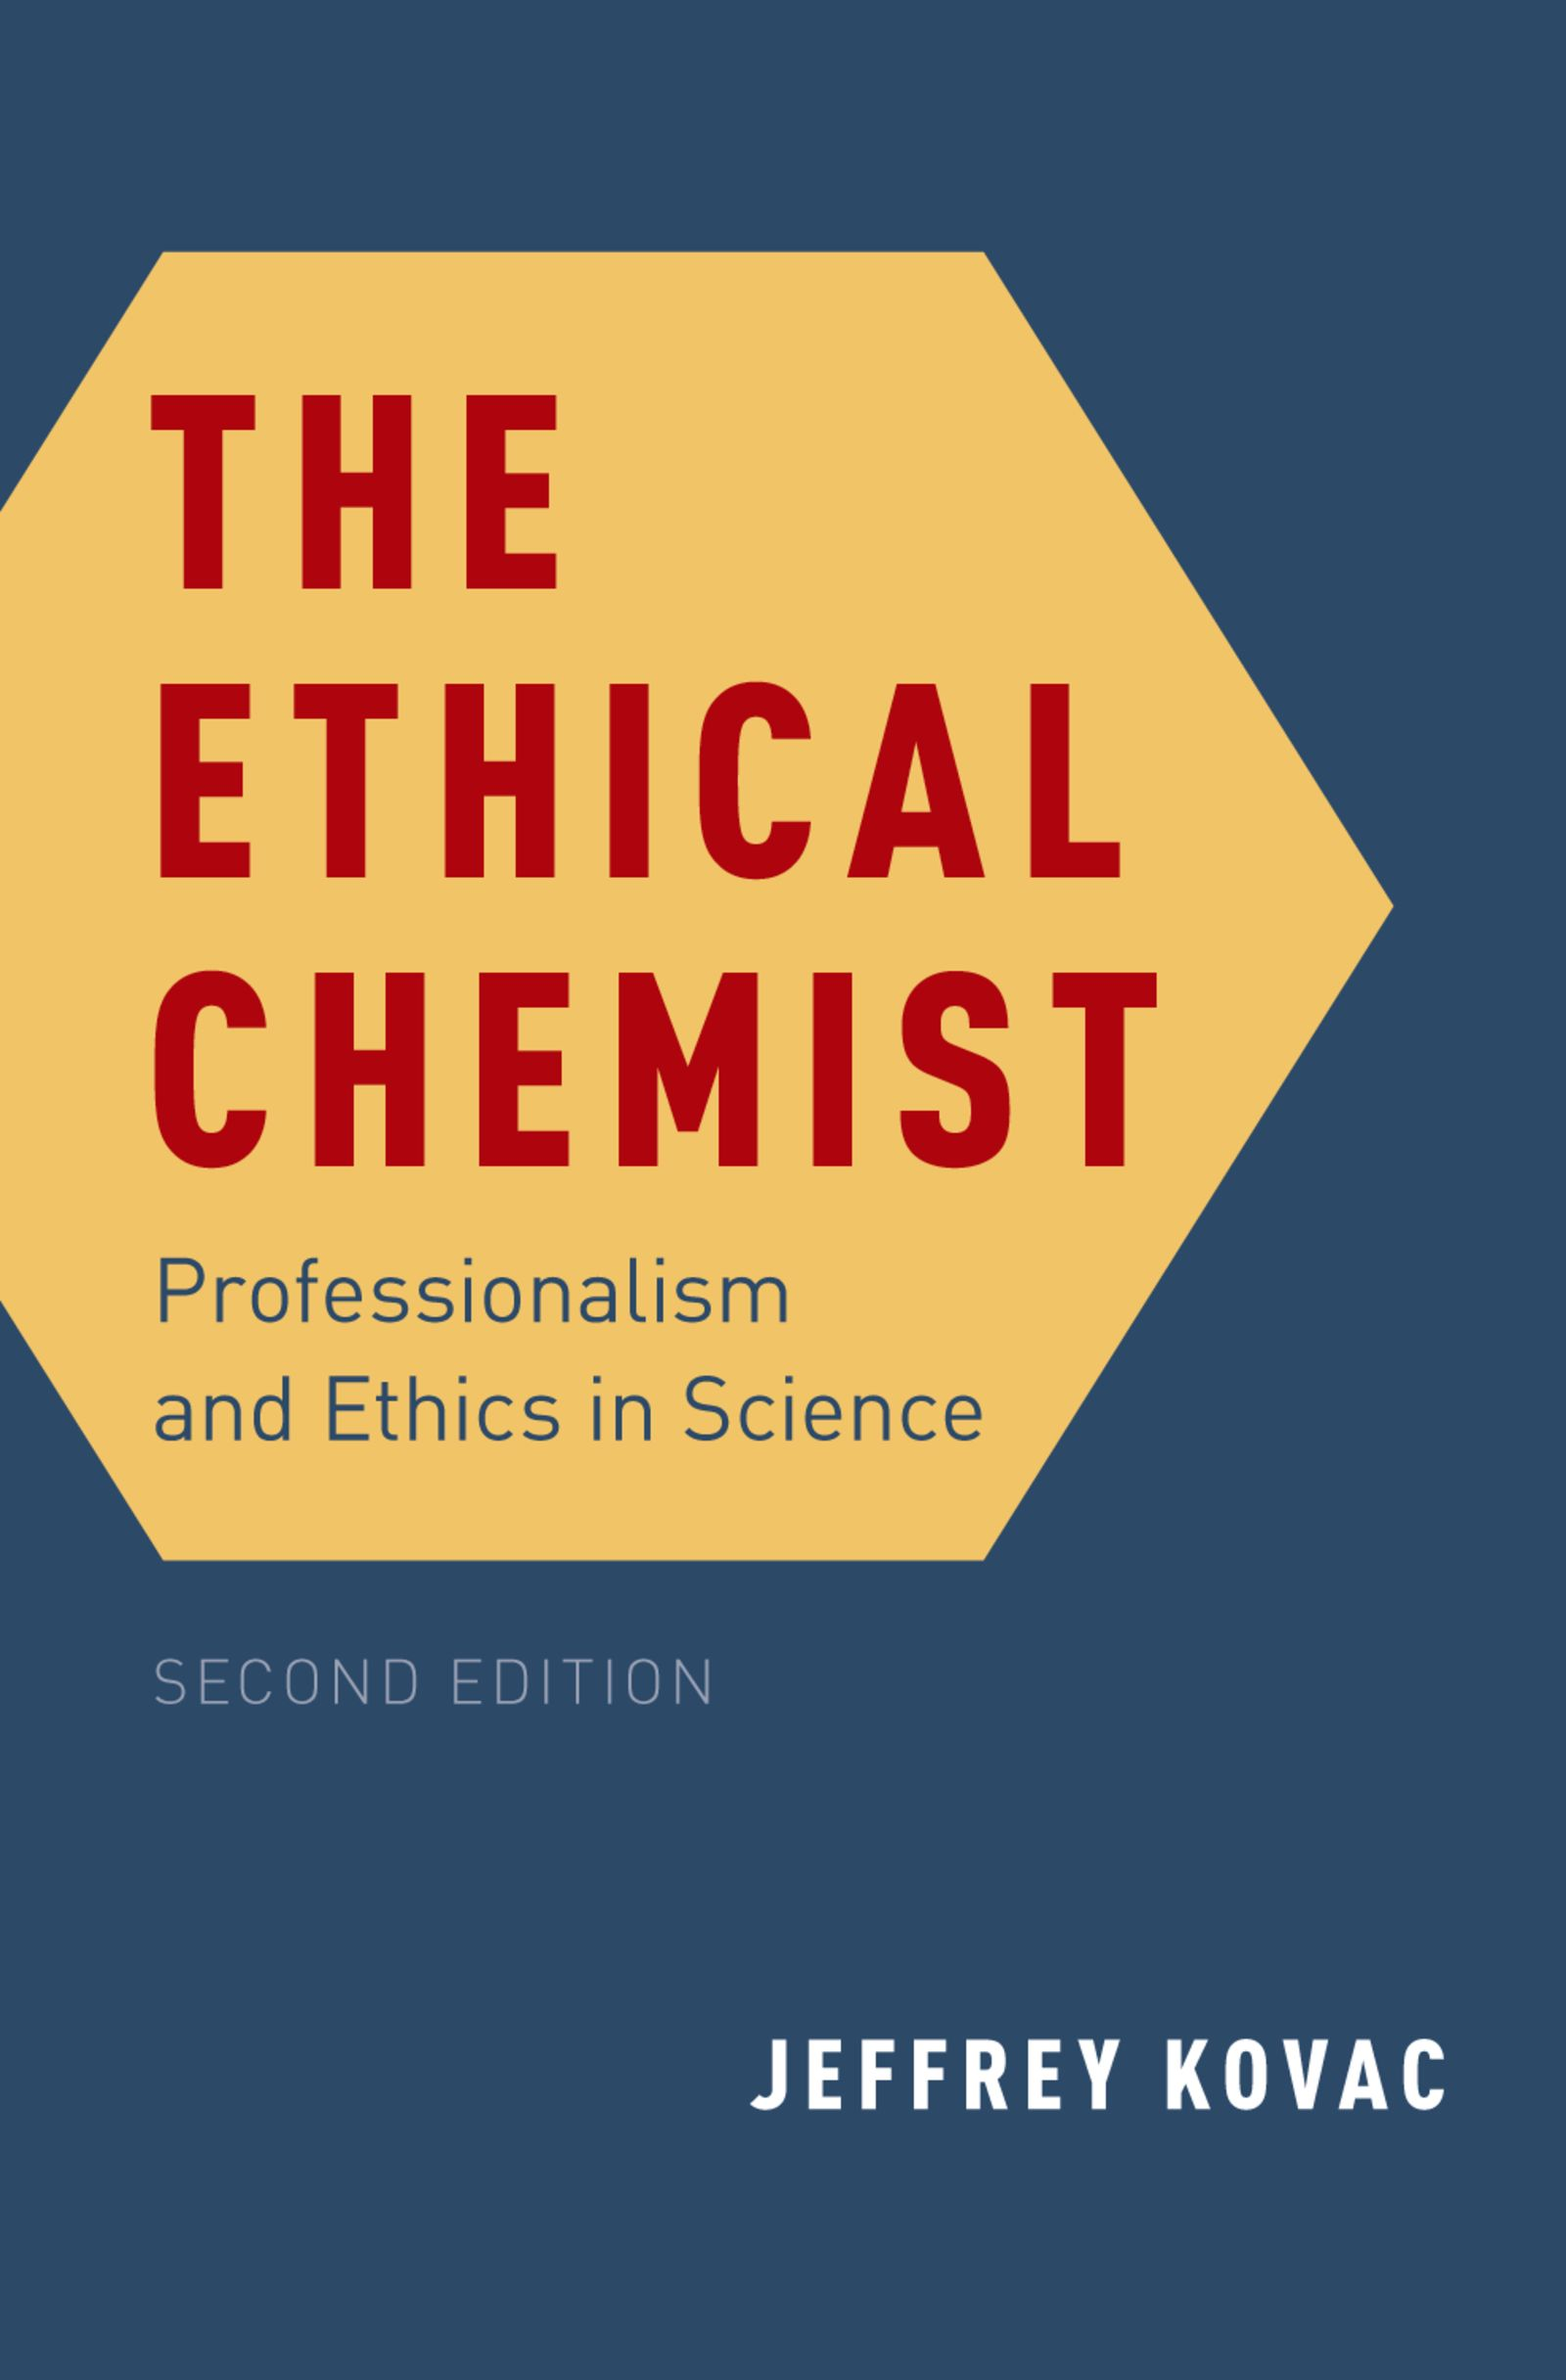 The Ethical ChemistProfessionalism and Ethics in Science